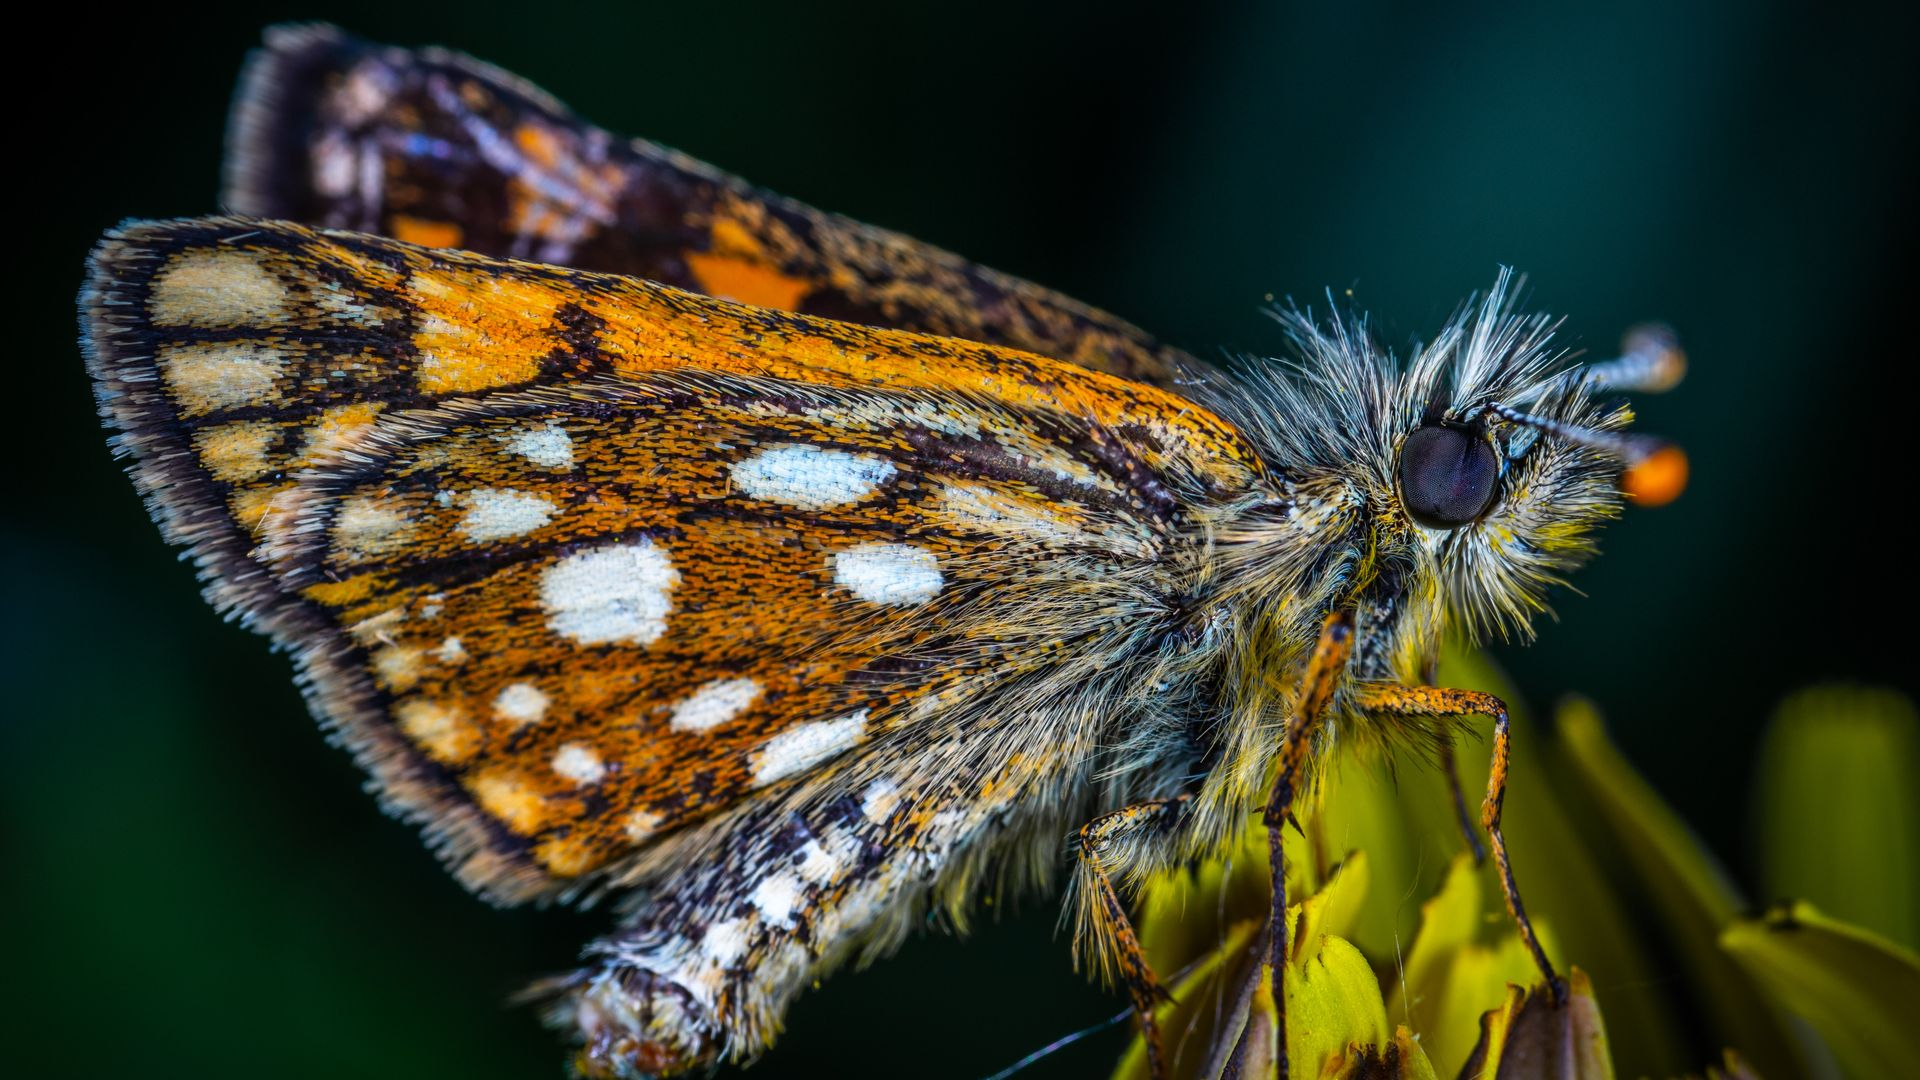 butterfly,photograph,macro,state of nature,nature,universe,of,creation,butterfly stroke,macrocosm,natural state,world,cosmos,photo